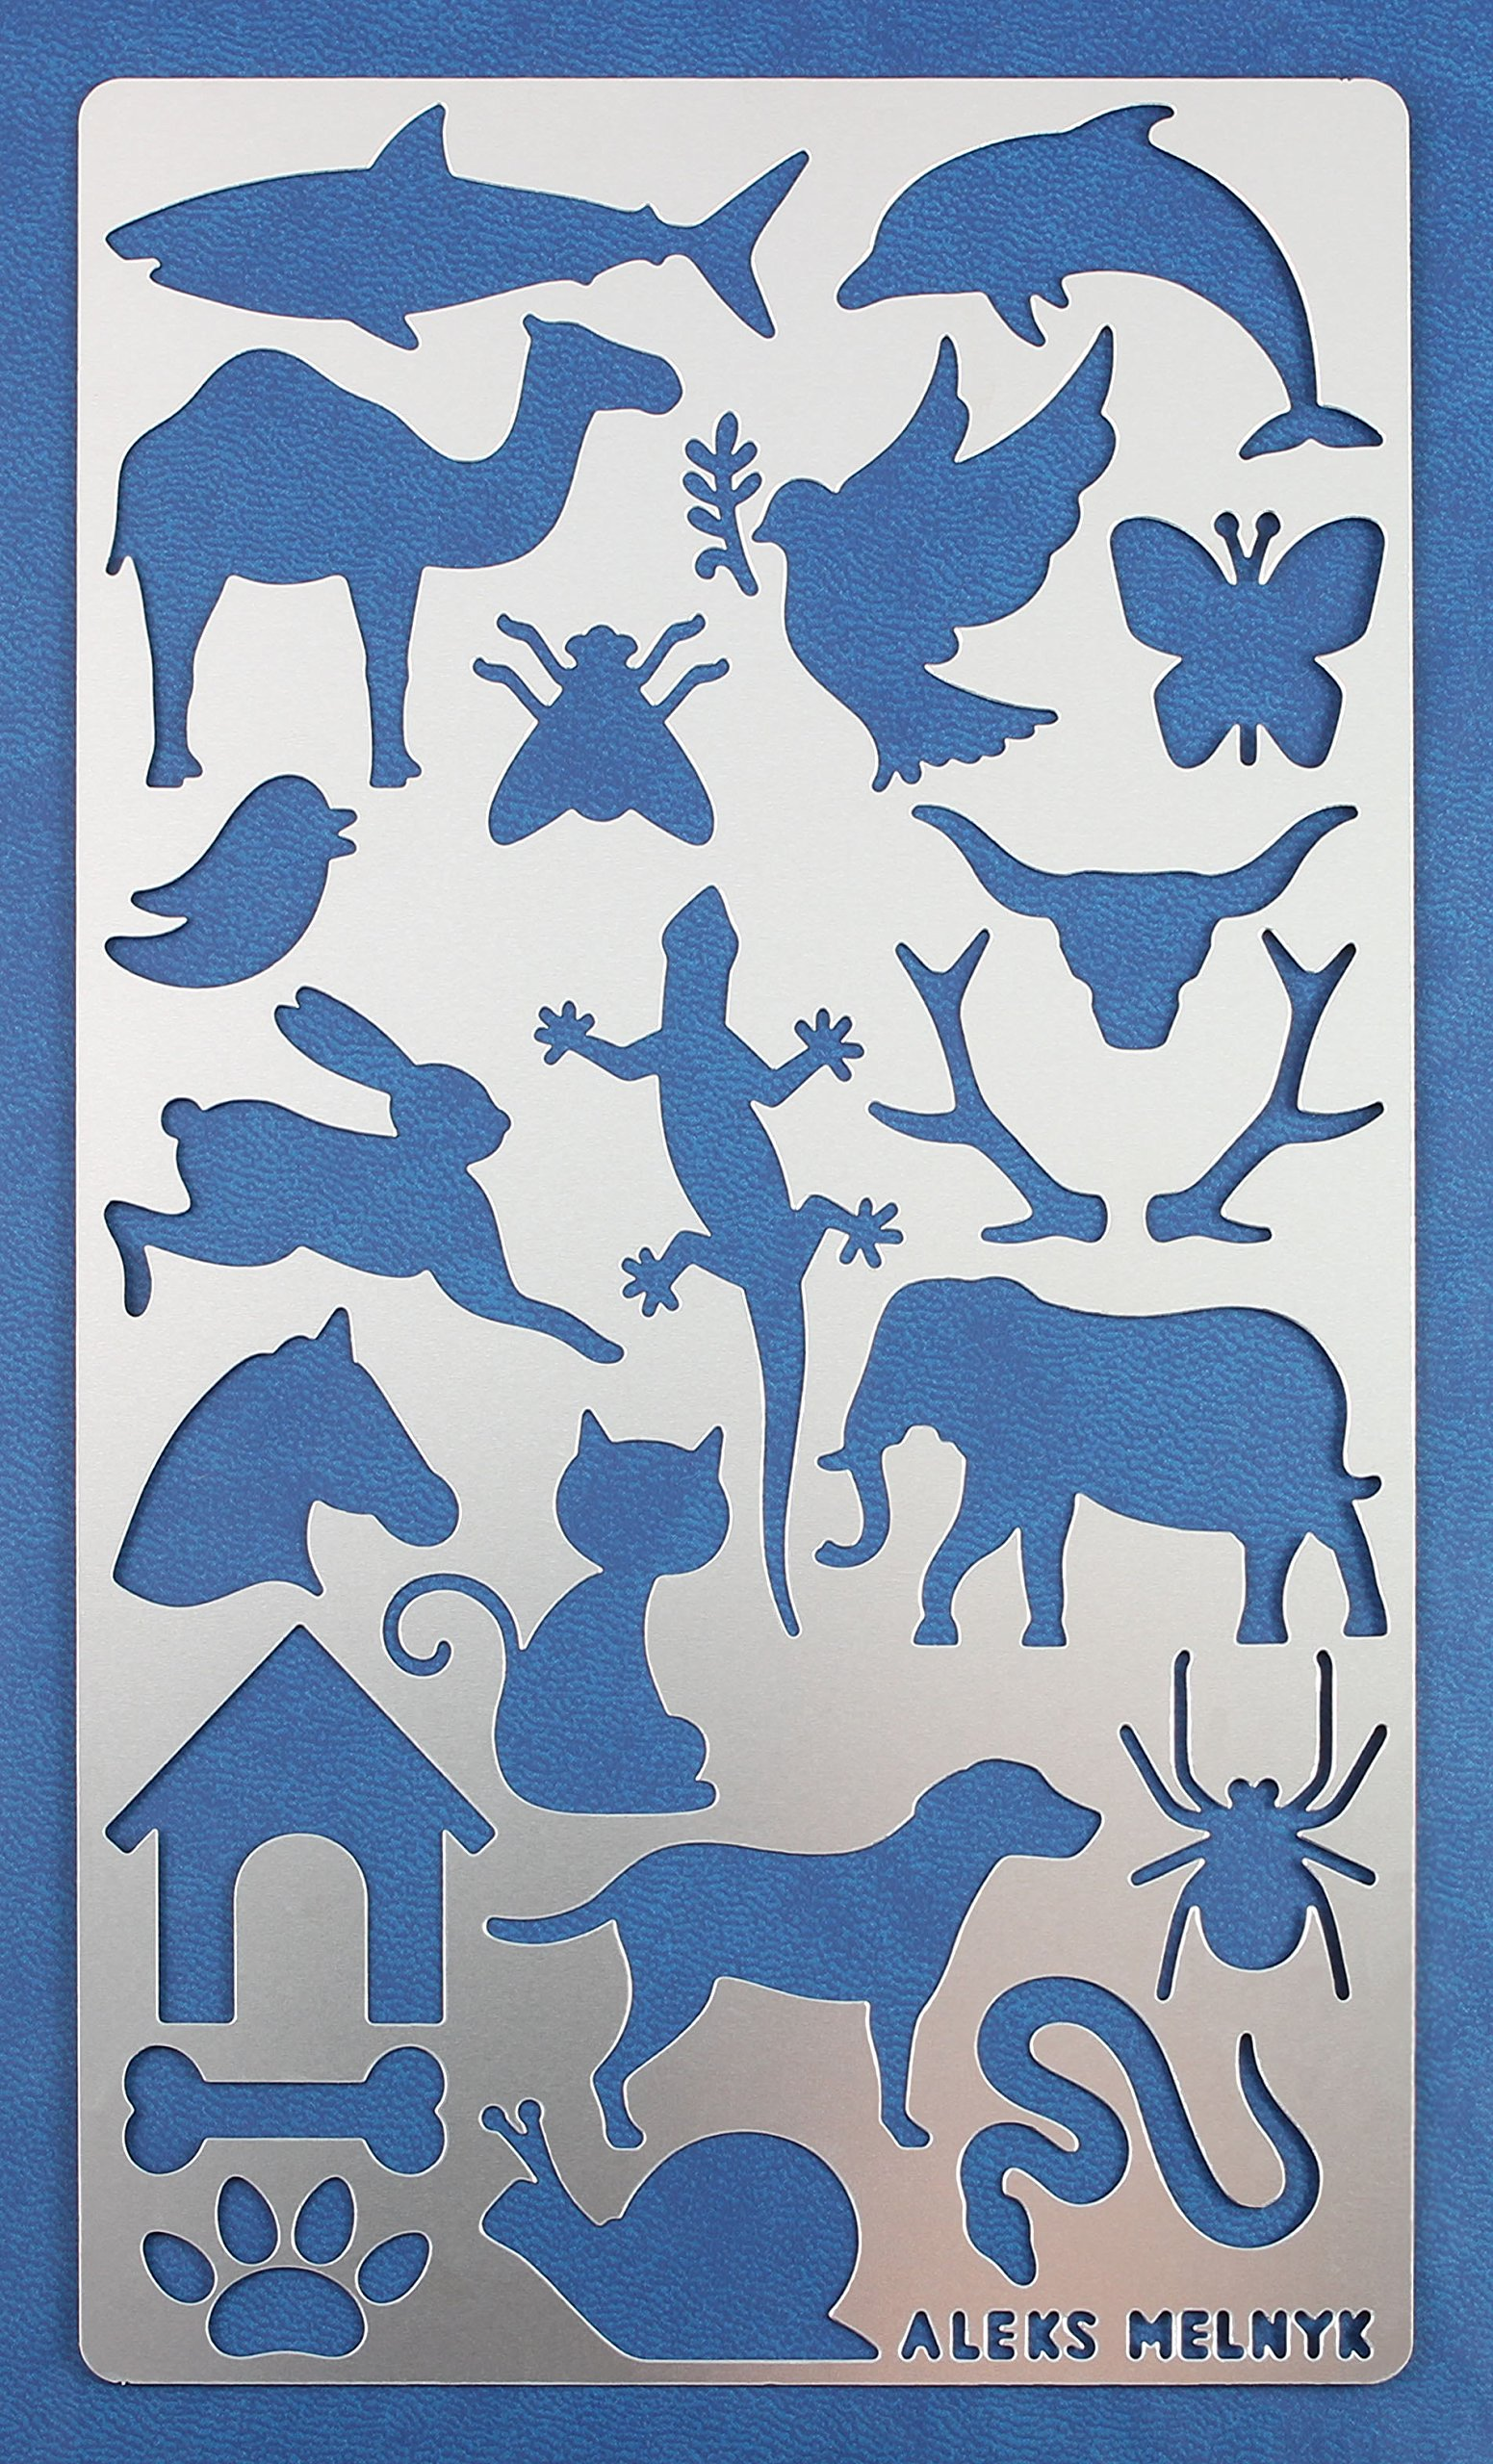 Aleks Melnyk #8 Metal Journal Stencil/Animals/Stainless Steel Stencil 1 PCS/Template Tool for Wood Burning, Pyrography and Engraving/Scrapbooking/Crafting/DIY